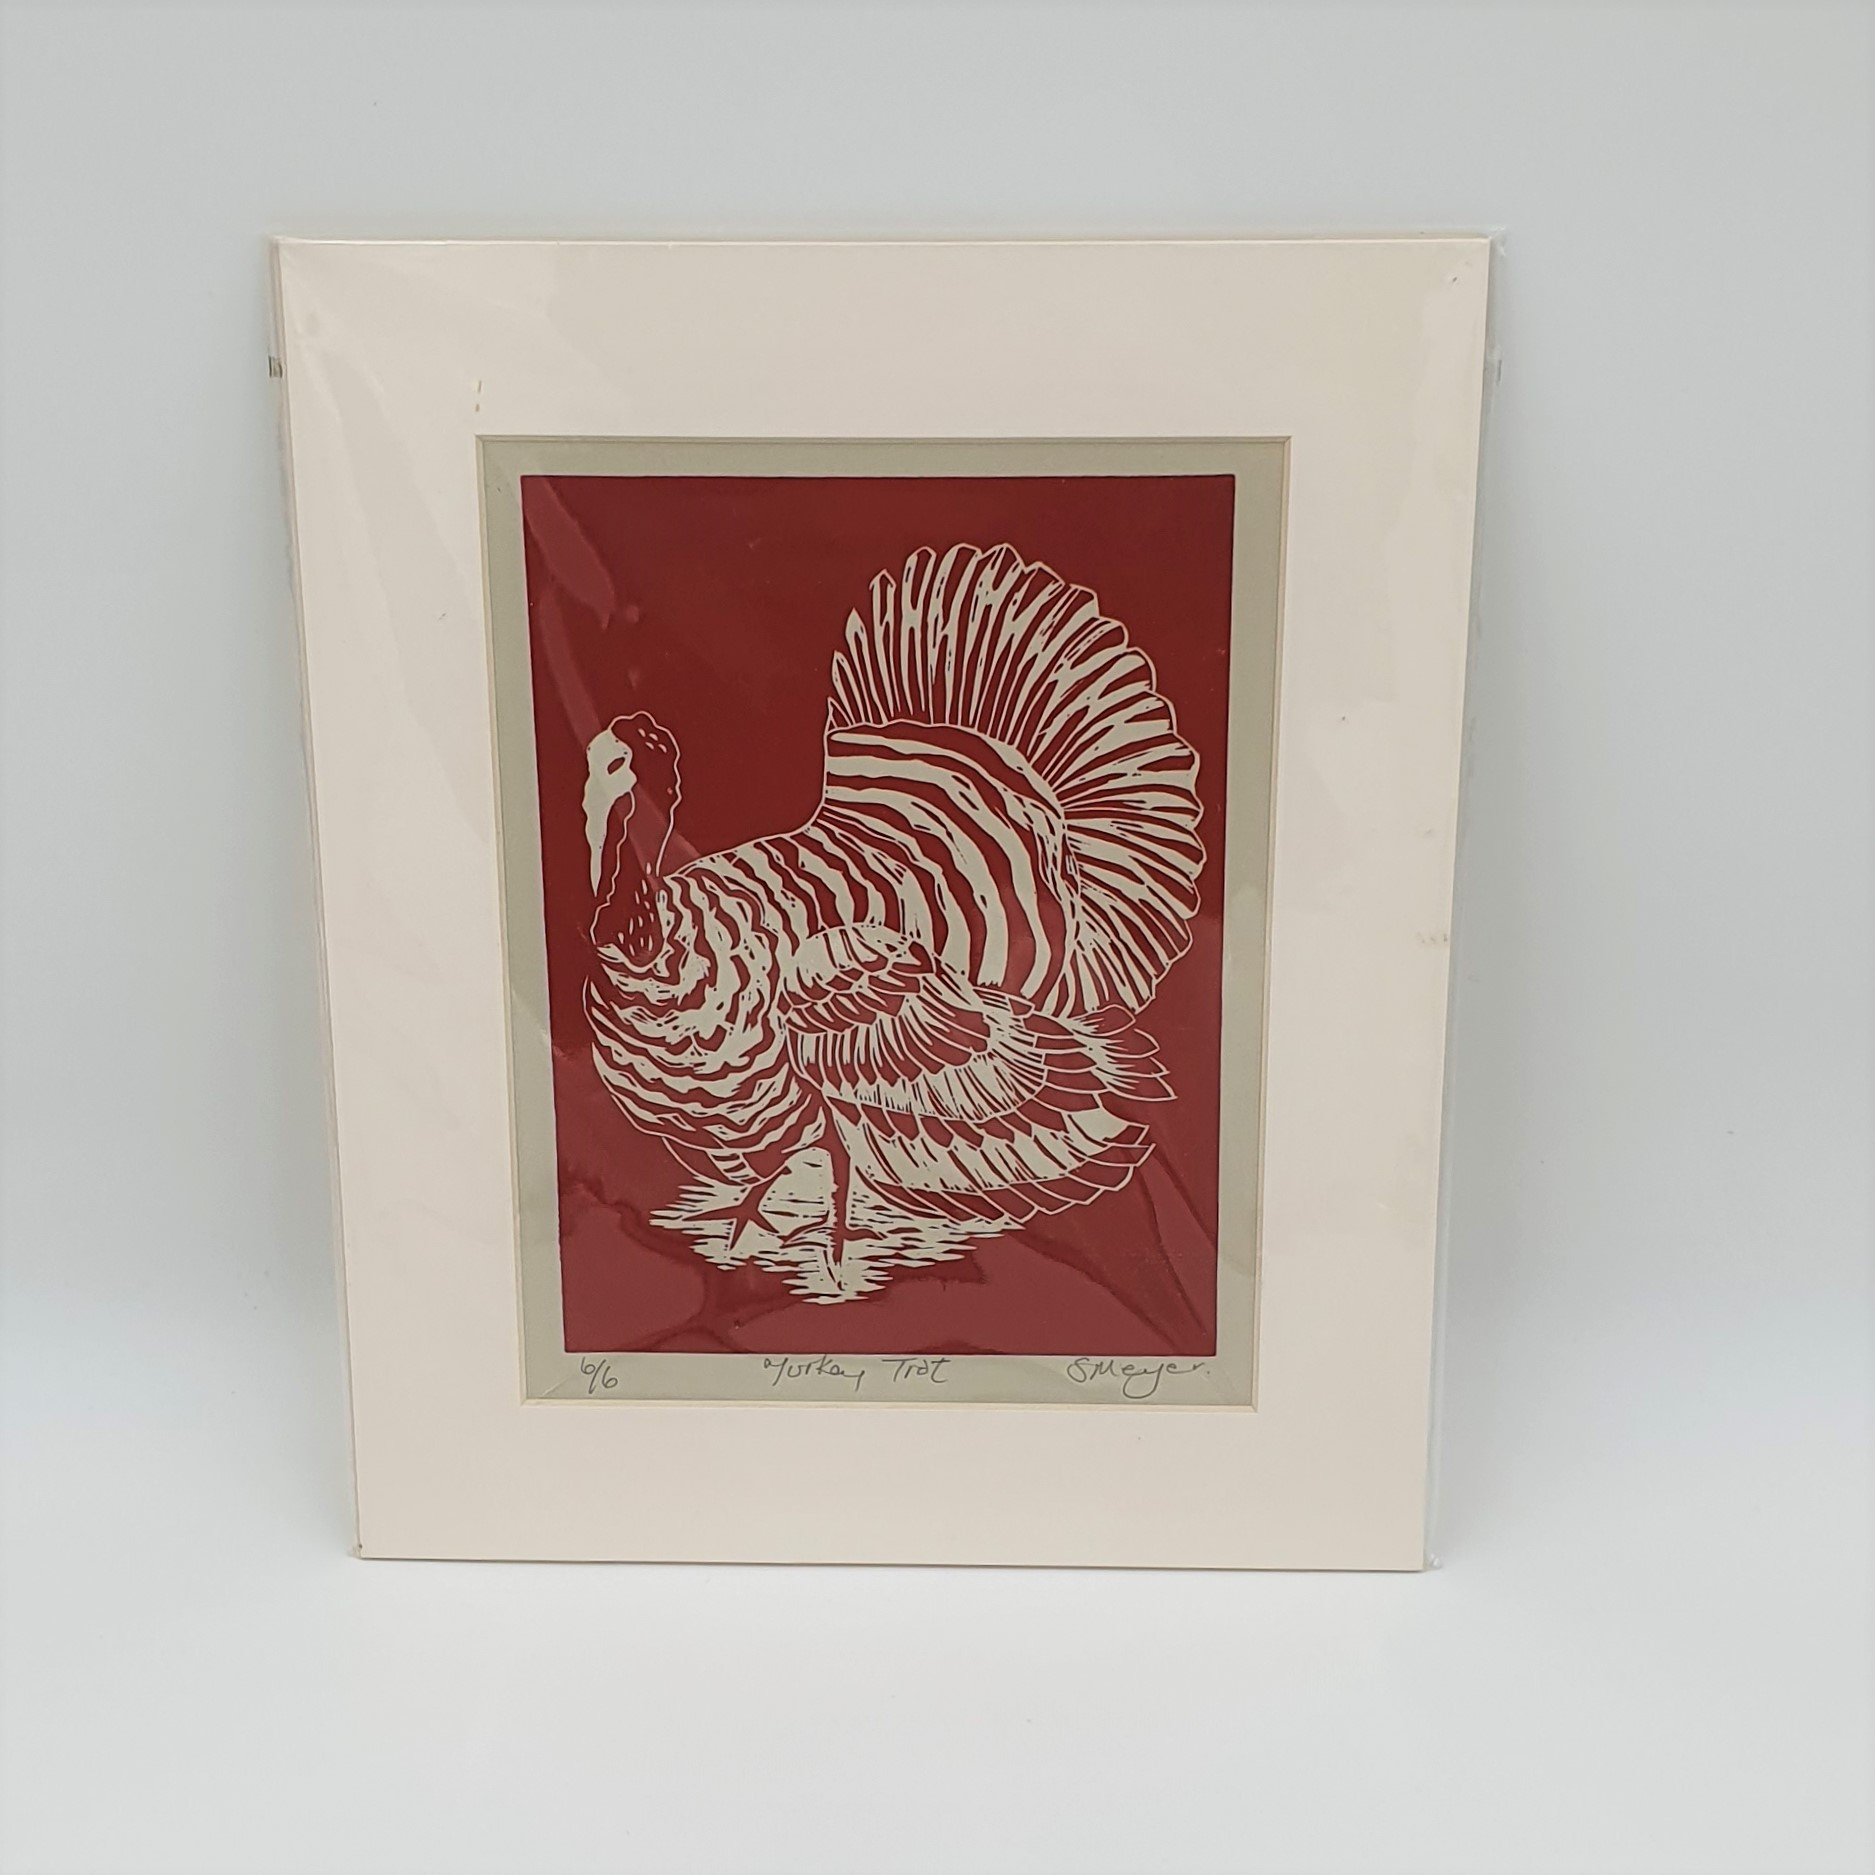 Shirley Meyer - Turkey Trot Linocut